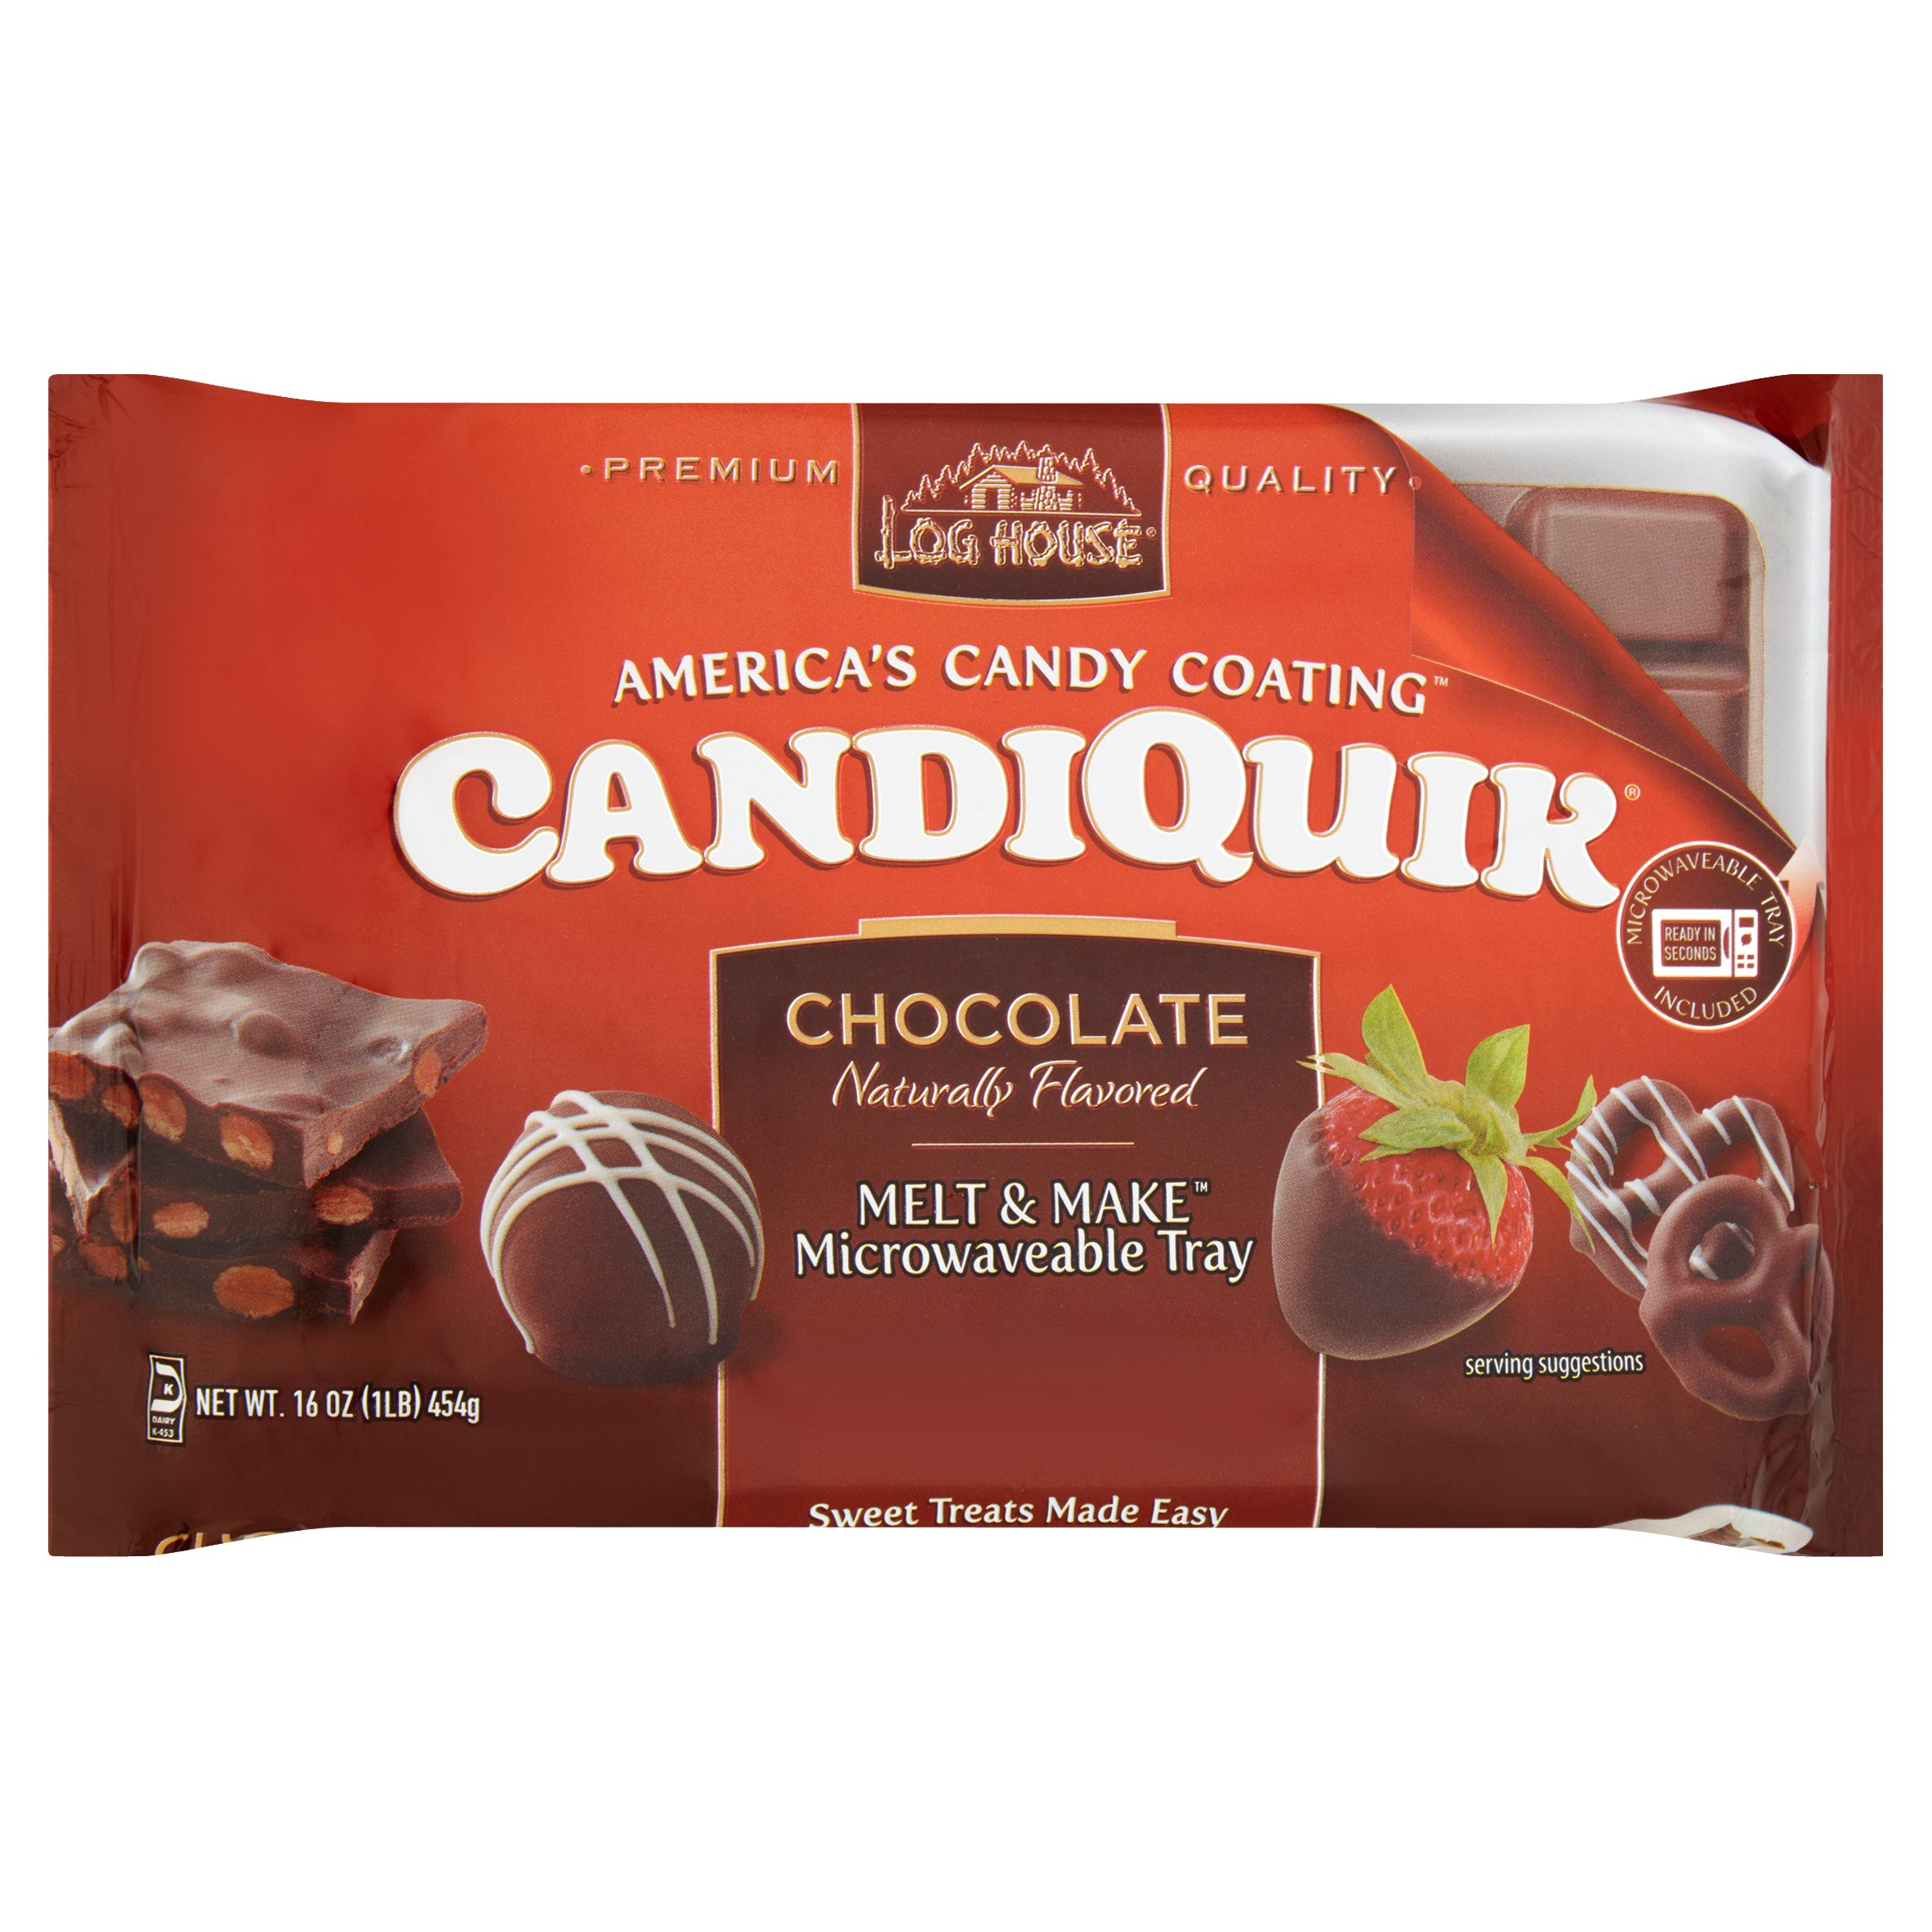 Log House Chocolate CandiQuik Coating 16 oz